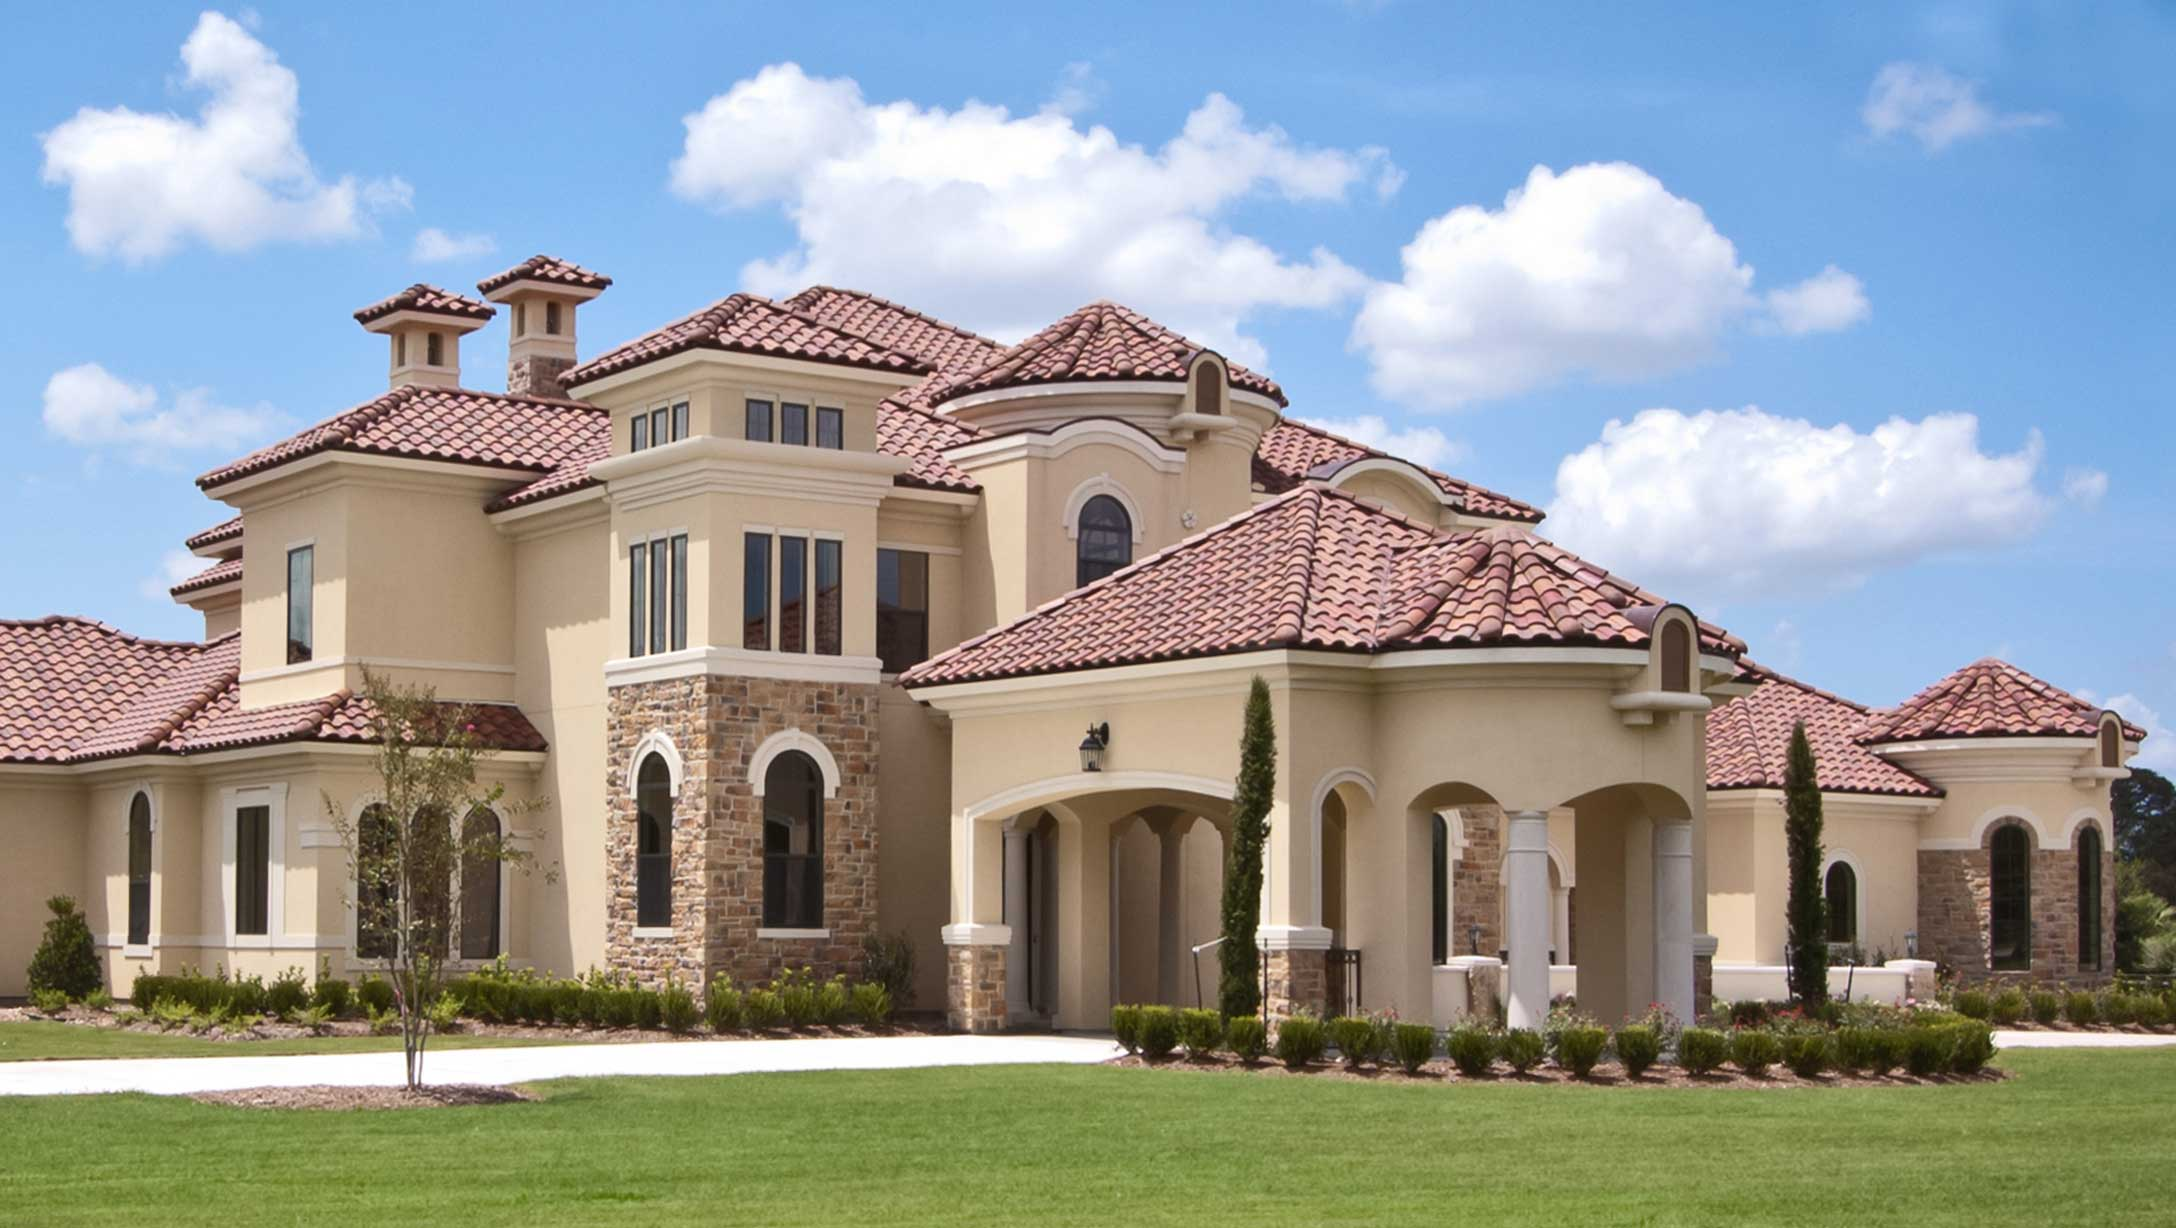 Houston Custom Home Builders Picklo